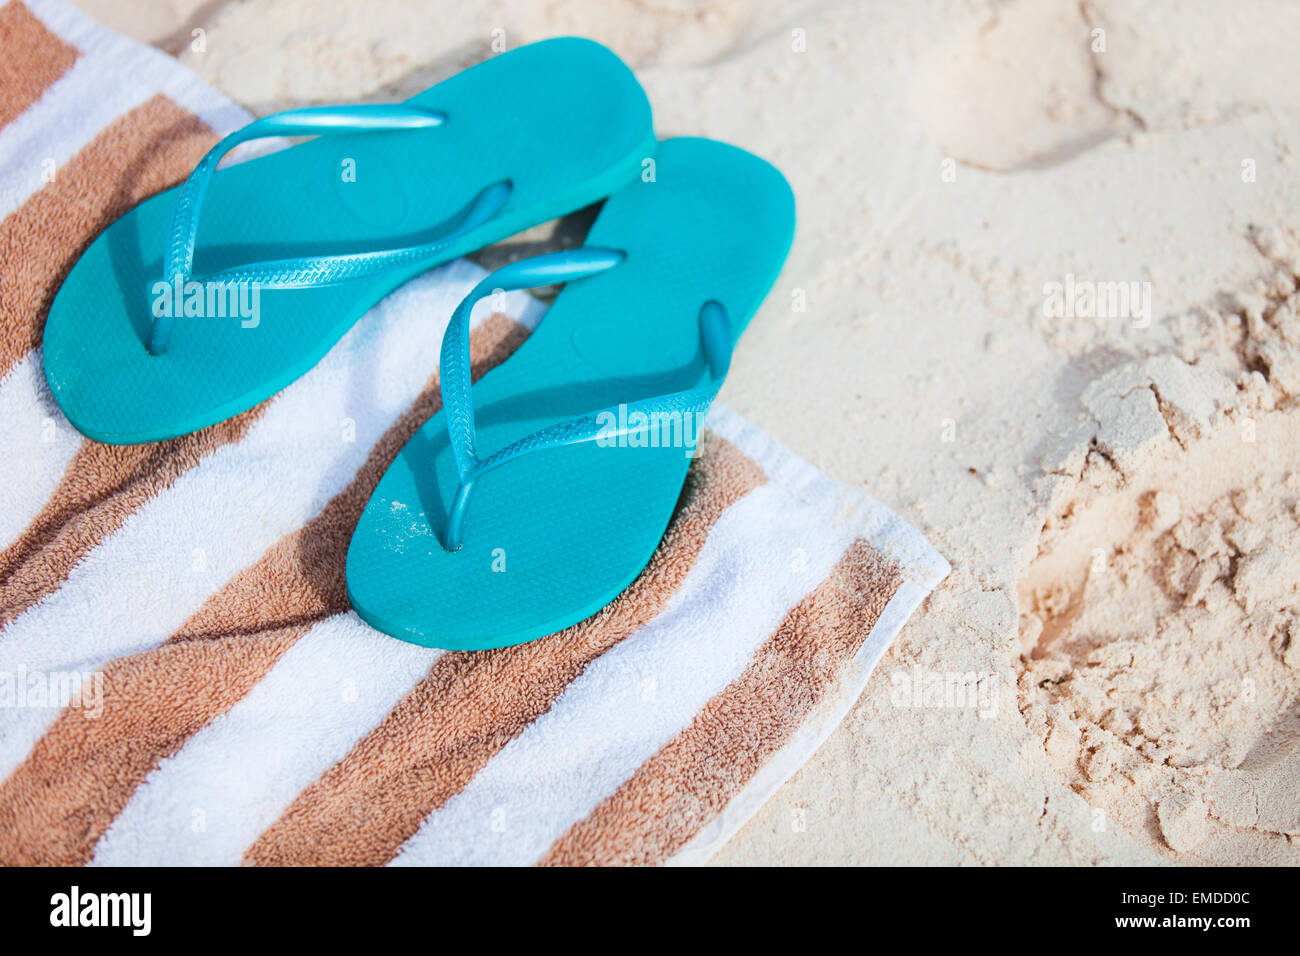 Flip flops at beach - Stock Image